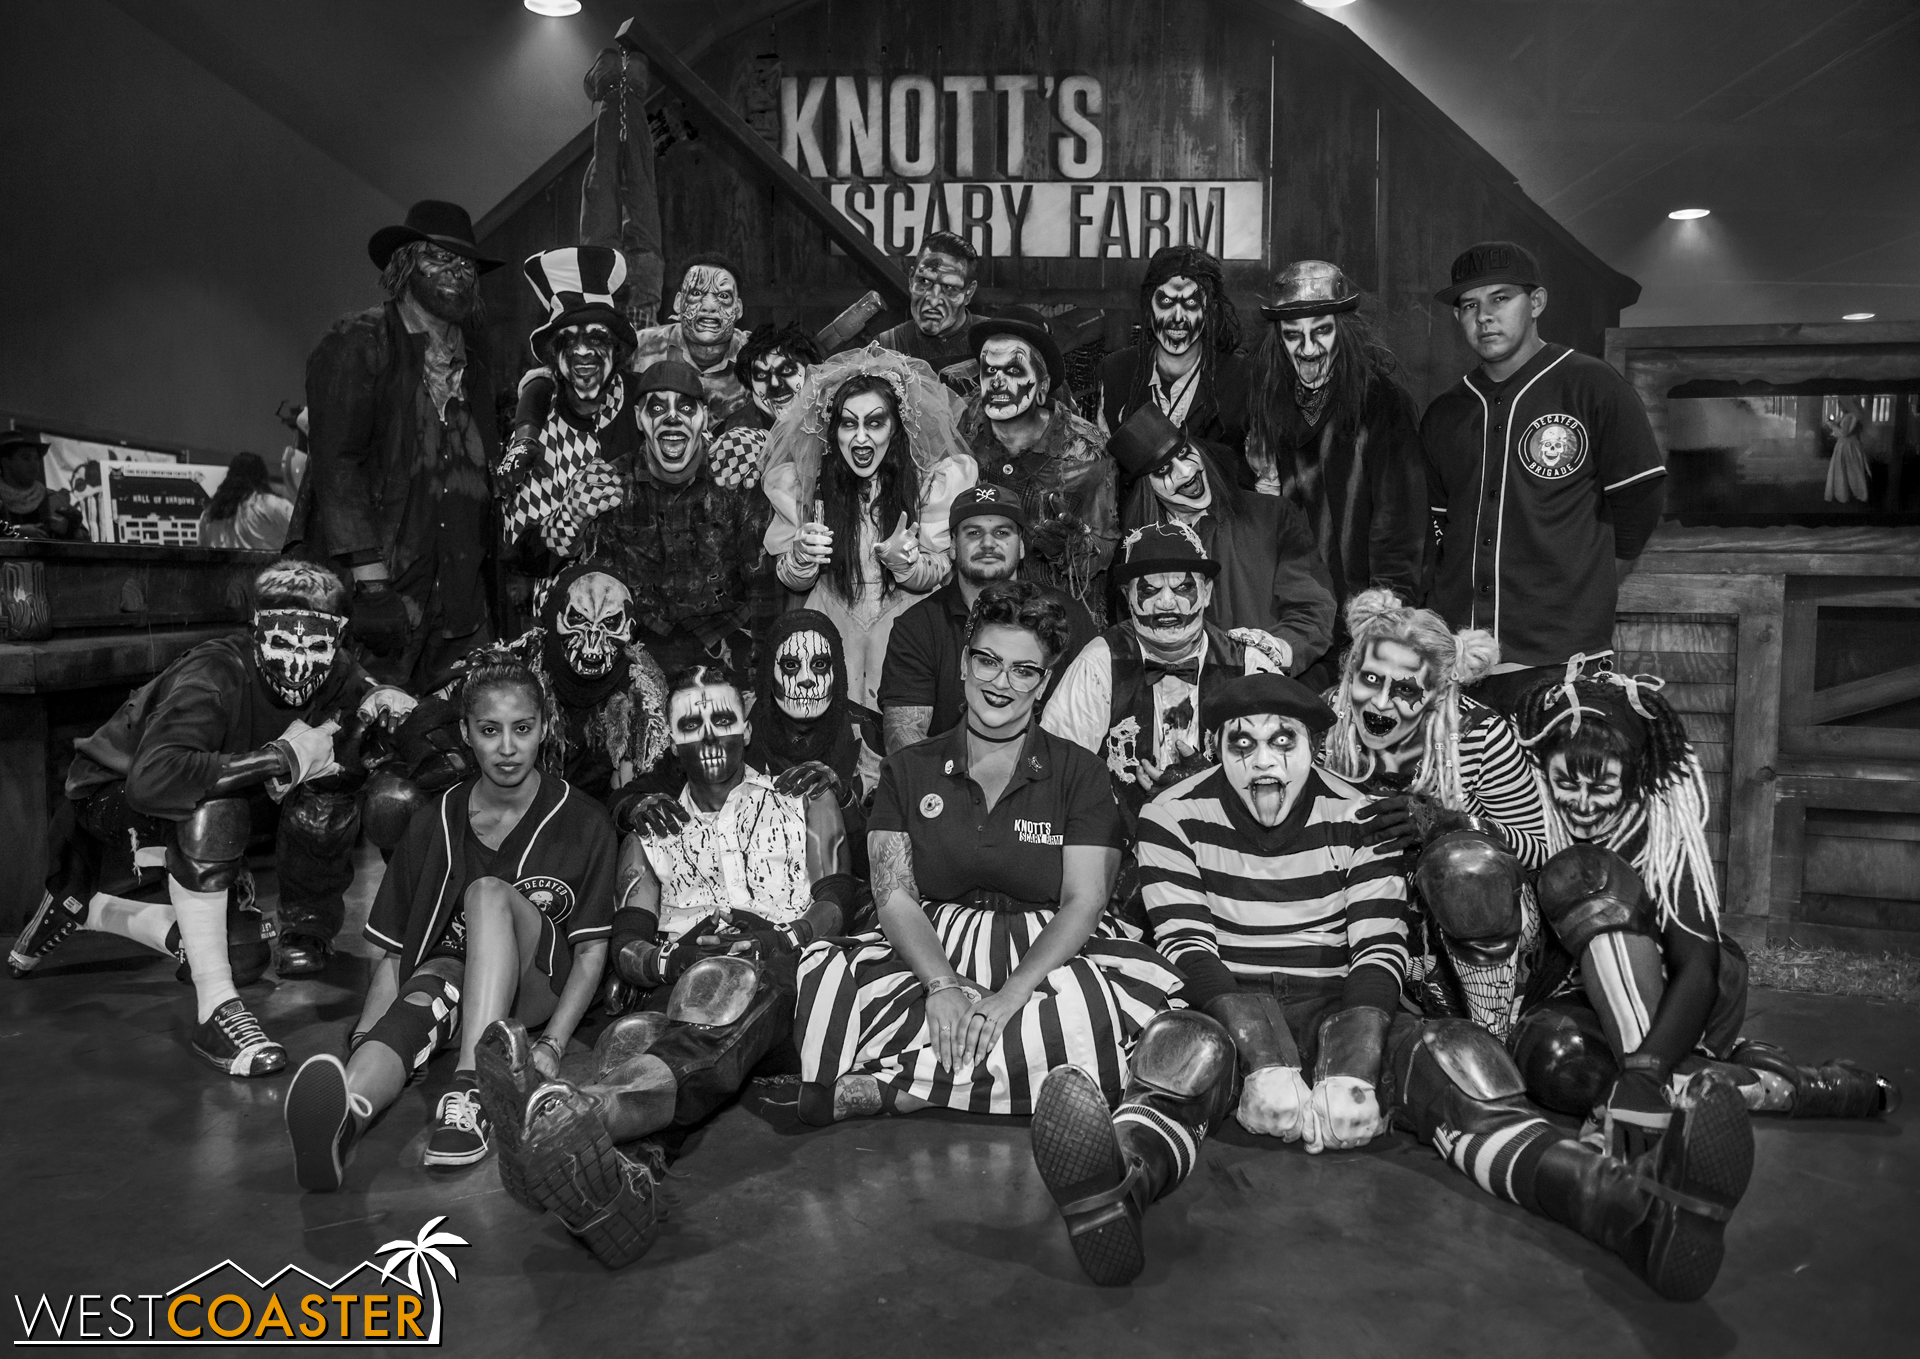 The Decayed Brigade slider group, gathered with some of their Knott's Scary Farm friends for a photo.